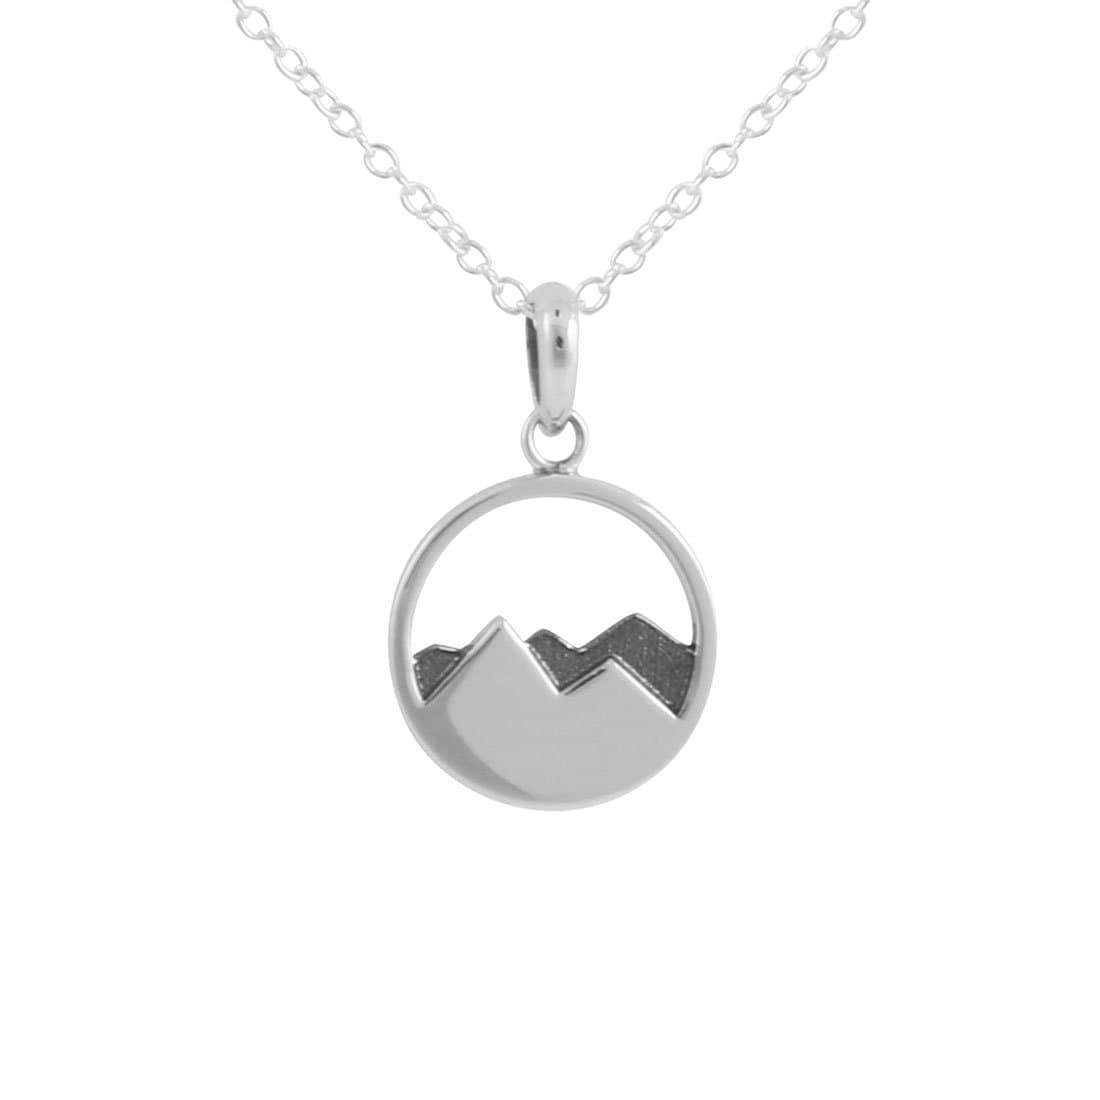 Midsummer Star Necklaces Mountain Ranges Necklace